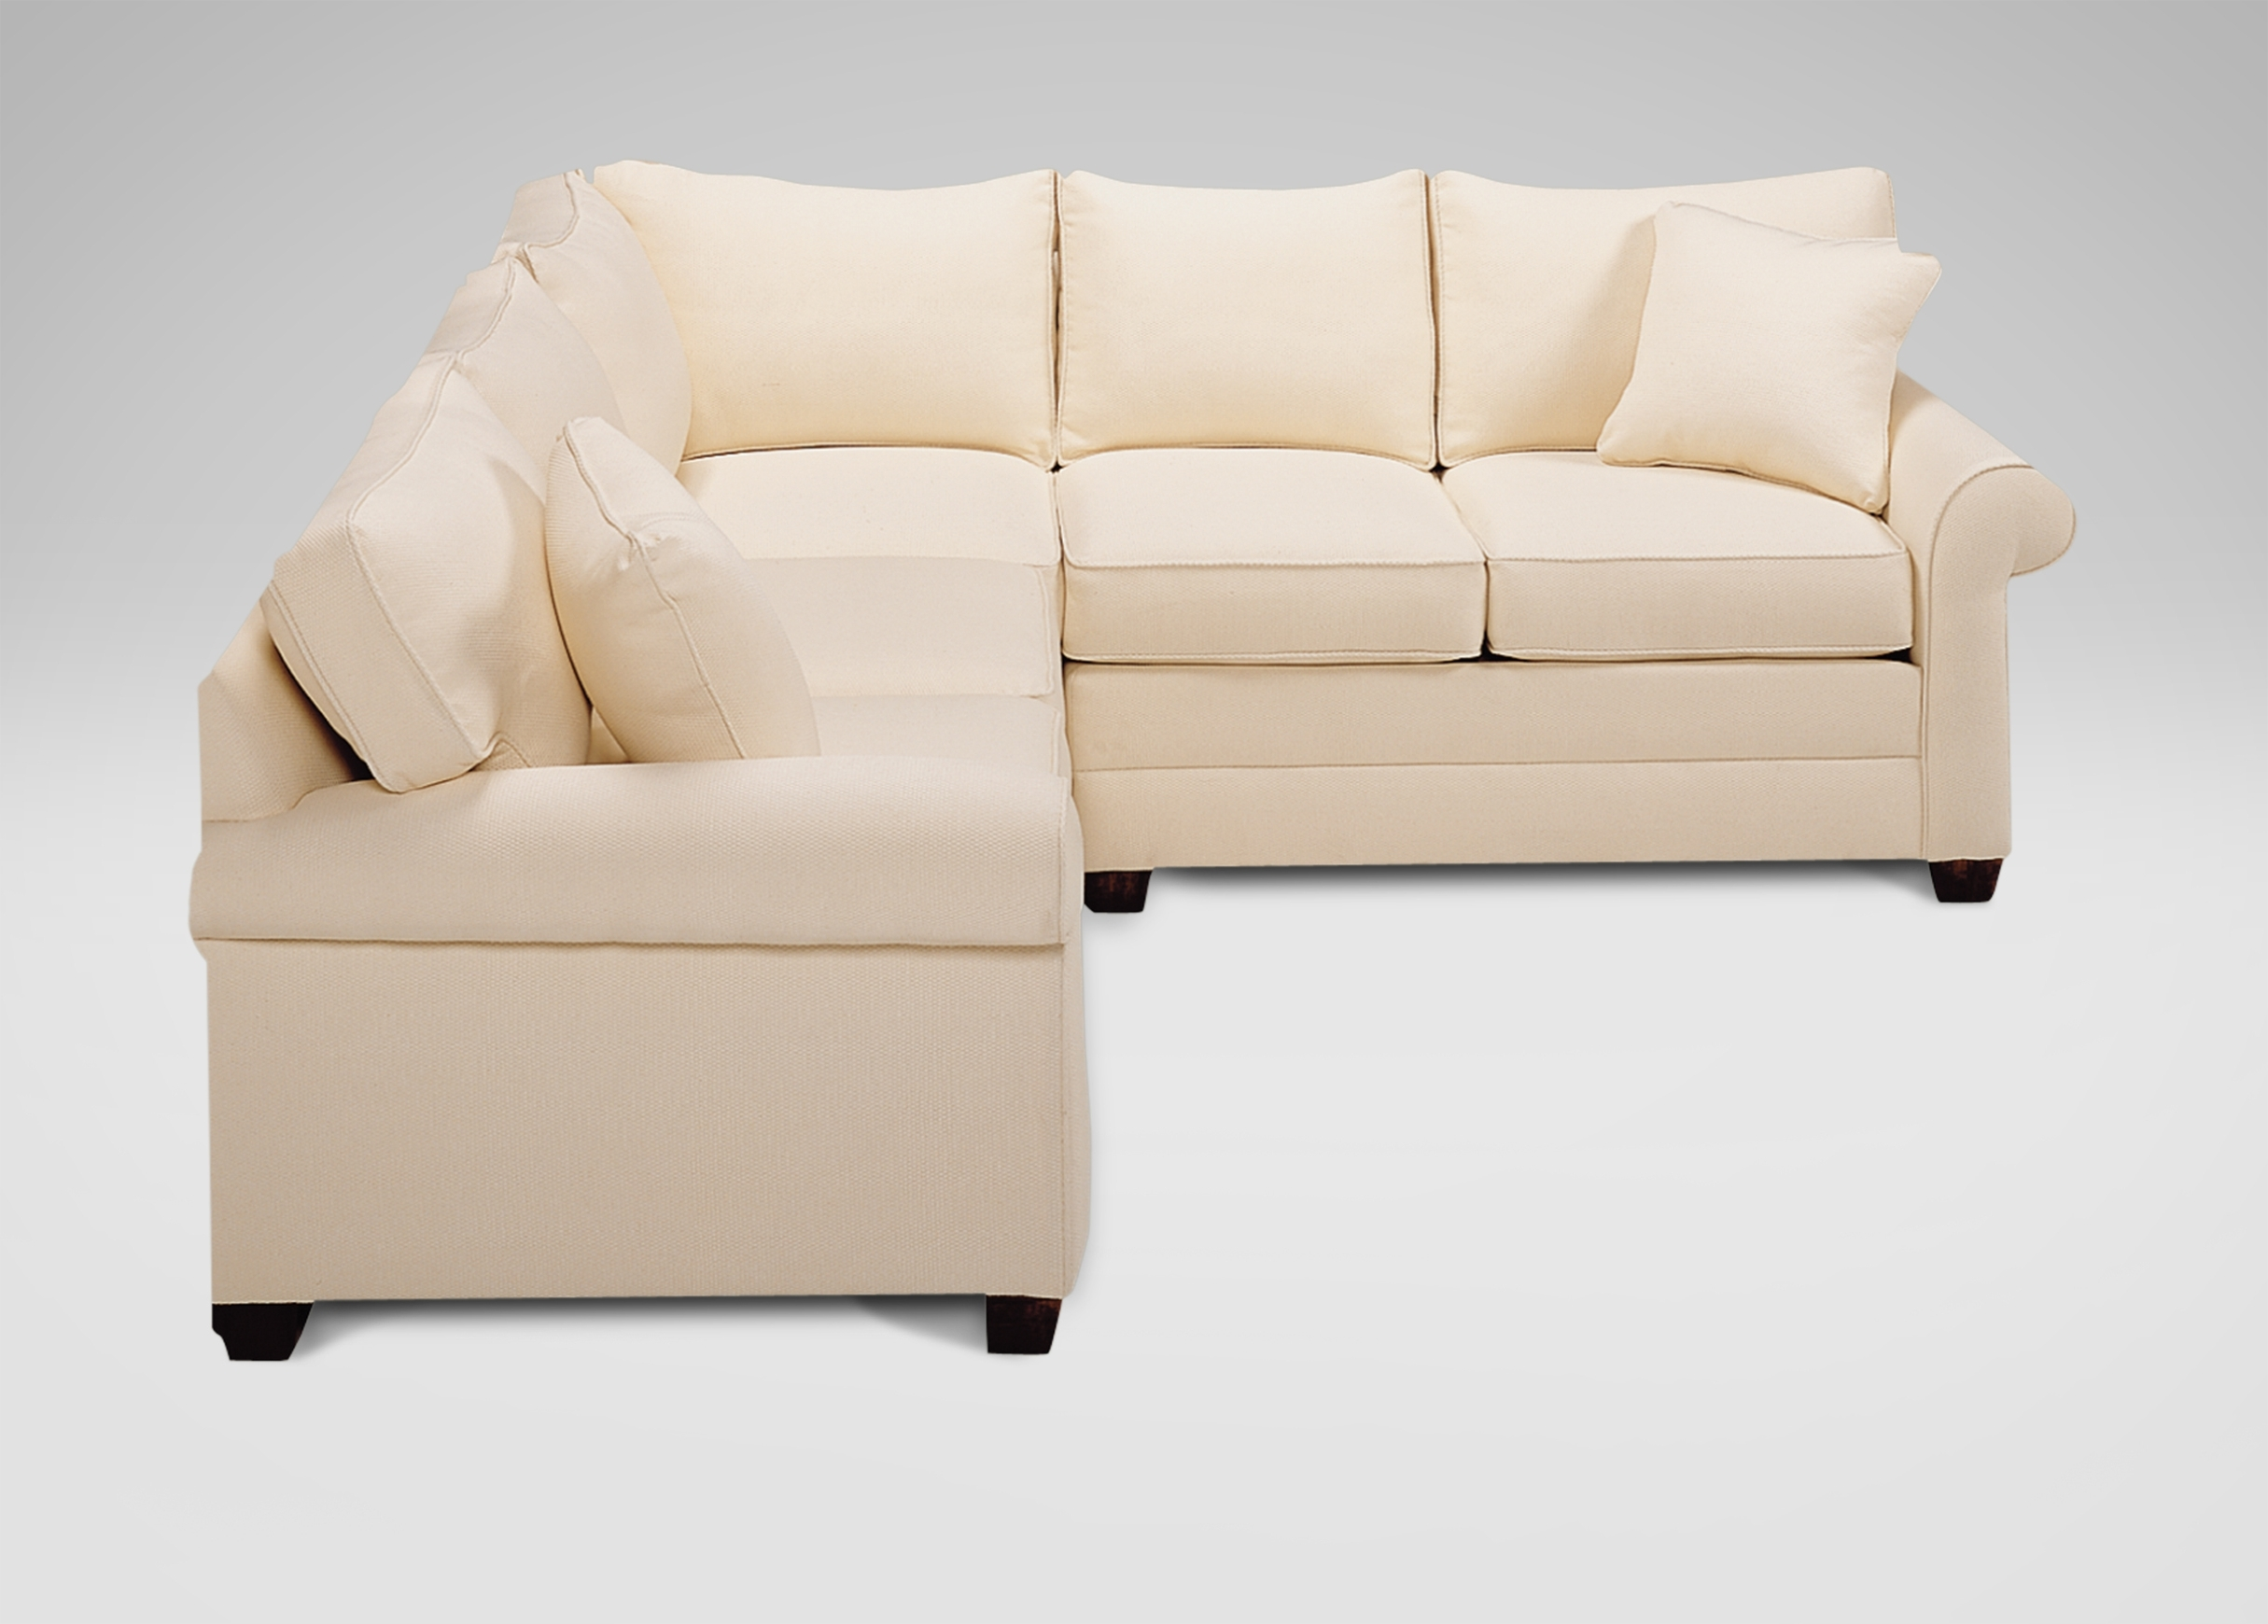 Sectional Sofas At Ethan Allen Within Most Popular Luxury Ethan Allen Sectional Sofas 80 In Sectional Sleeper Sofa (View 3 of 15)